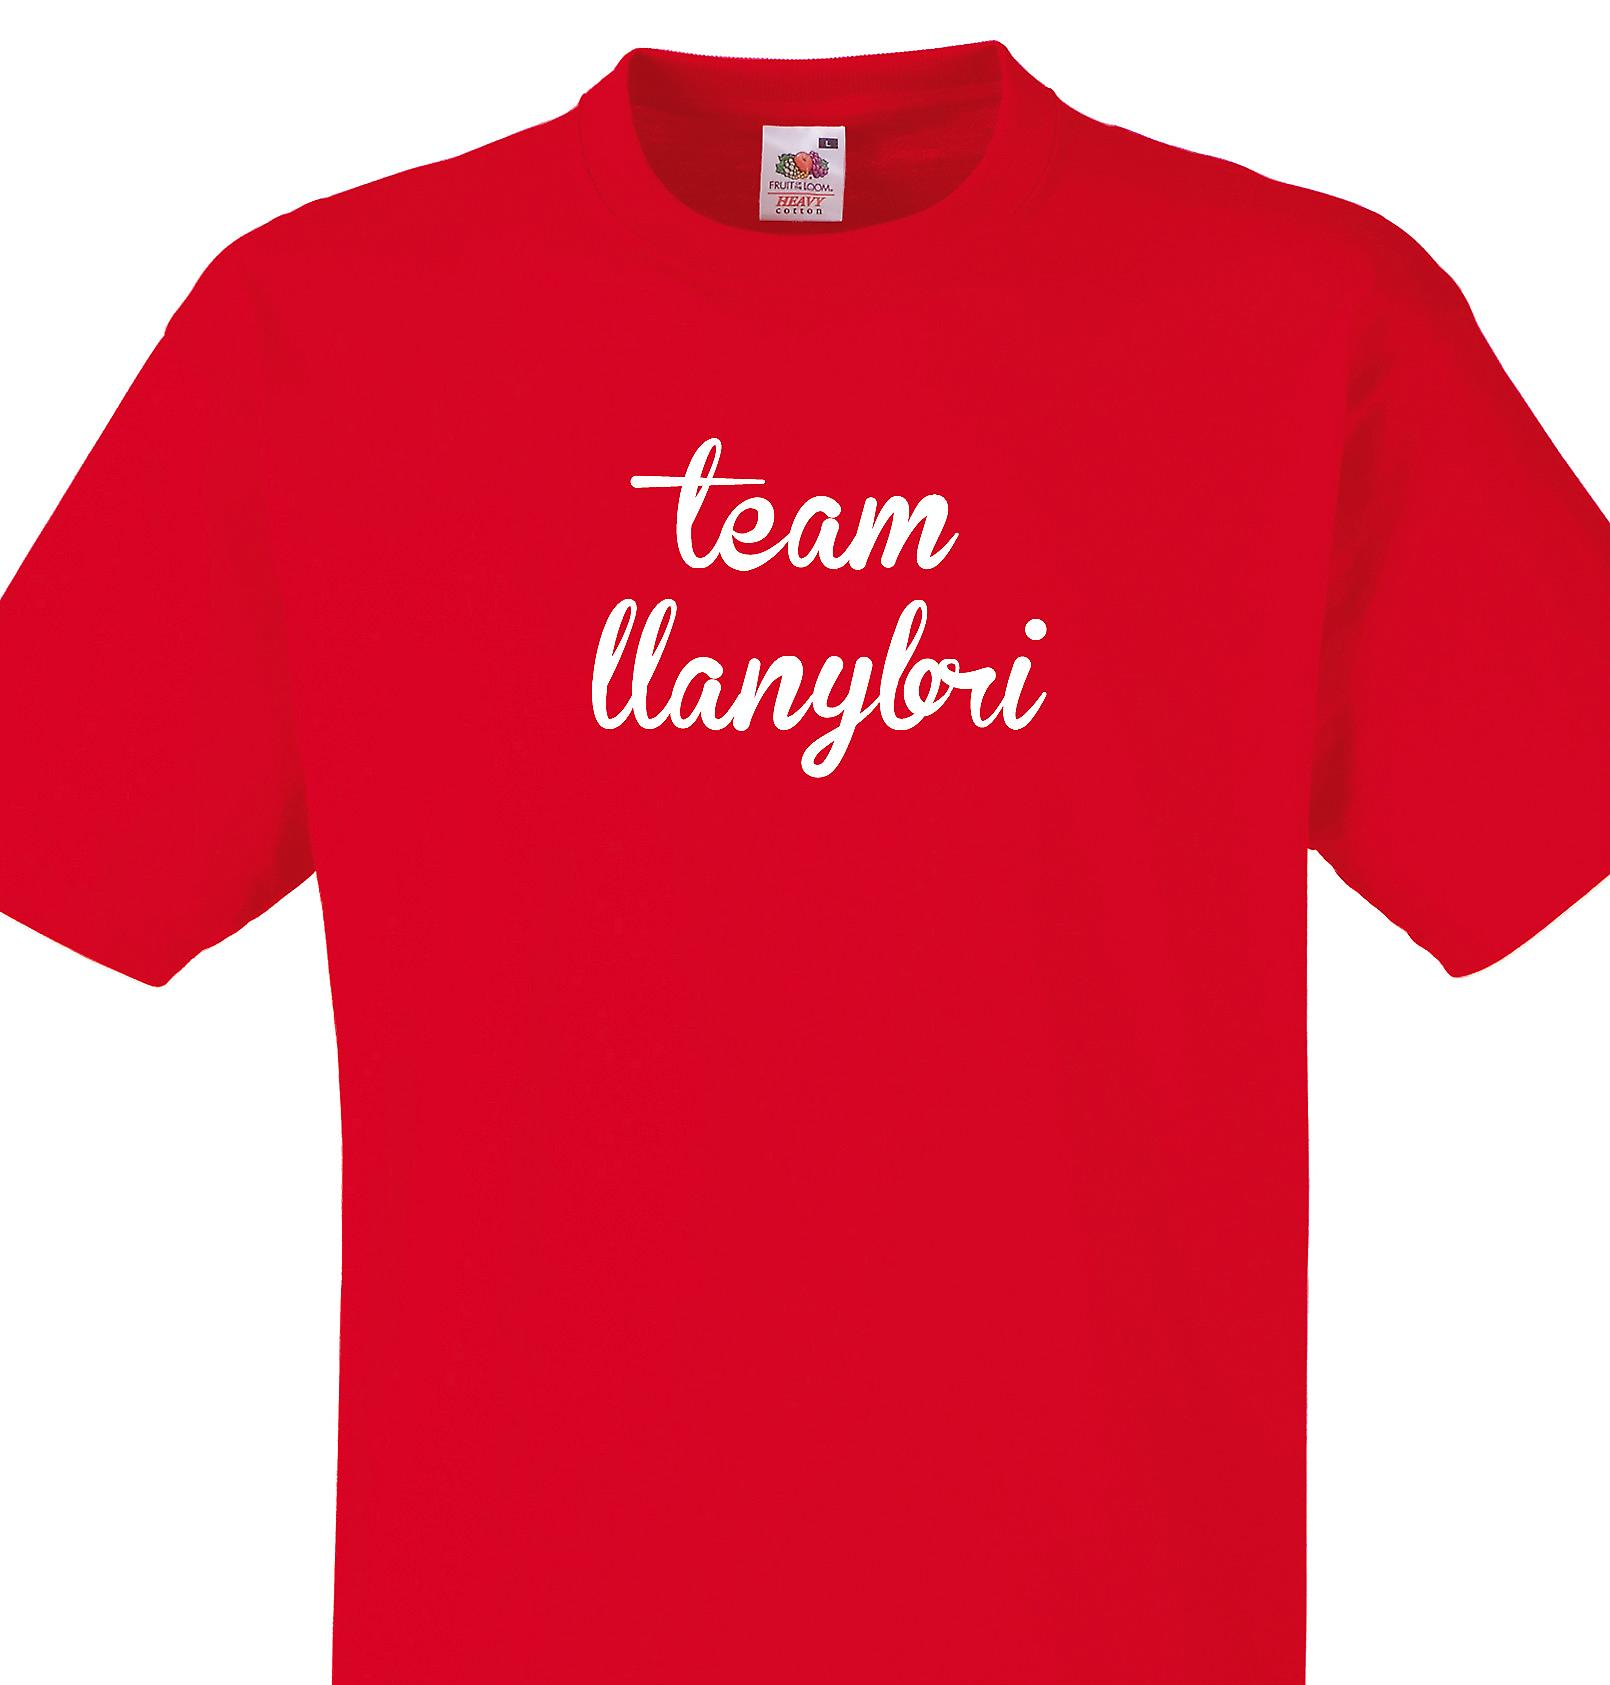 Team Llanybri Red T shirt